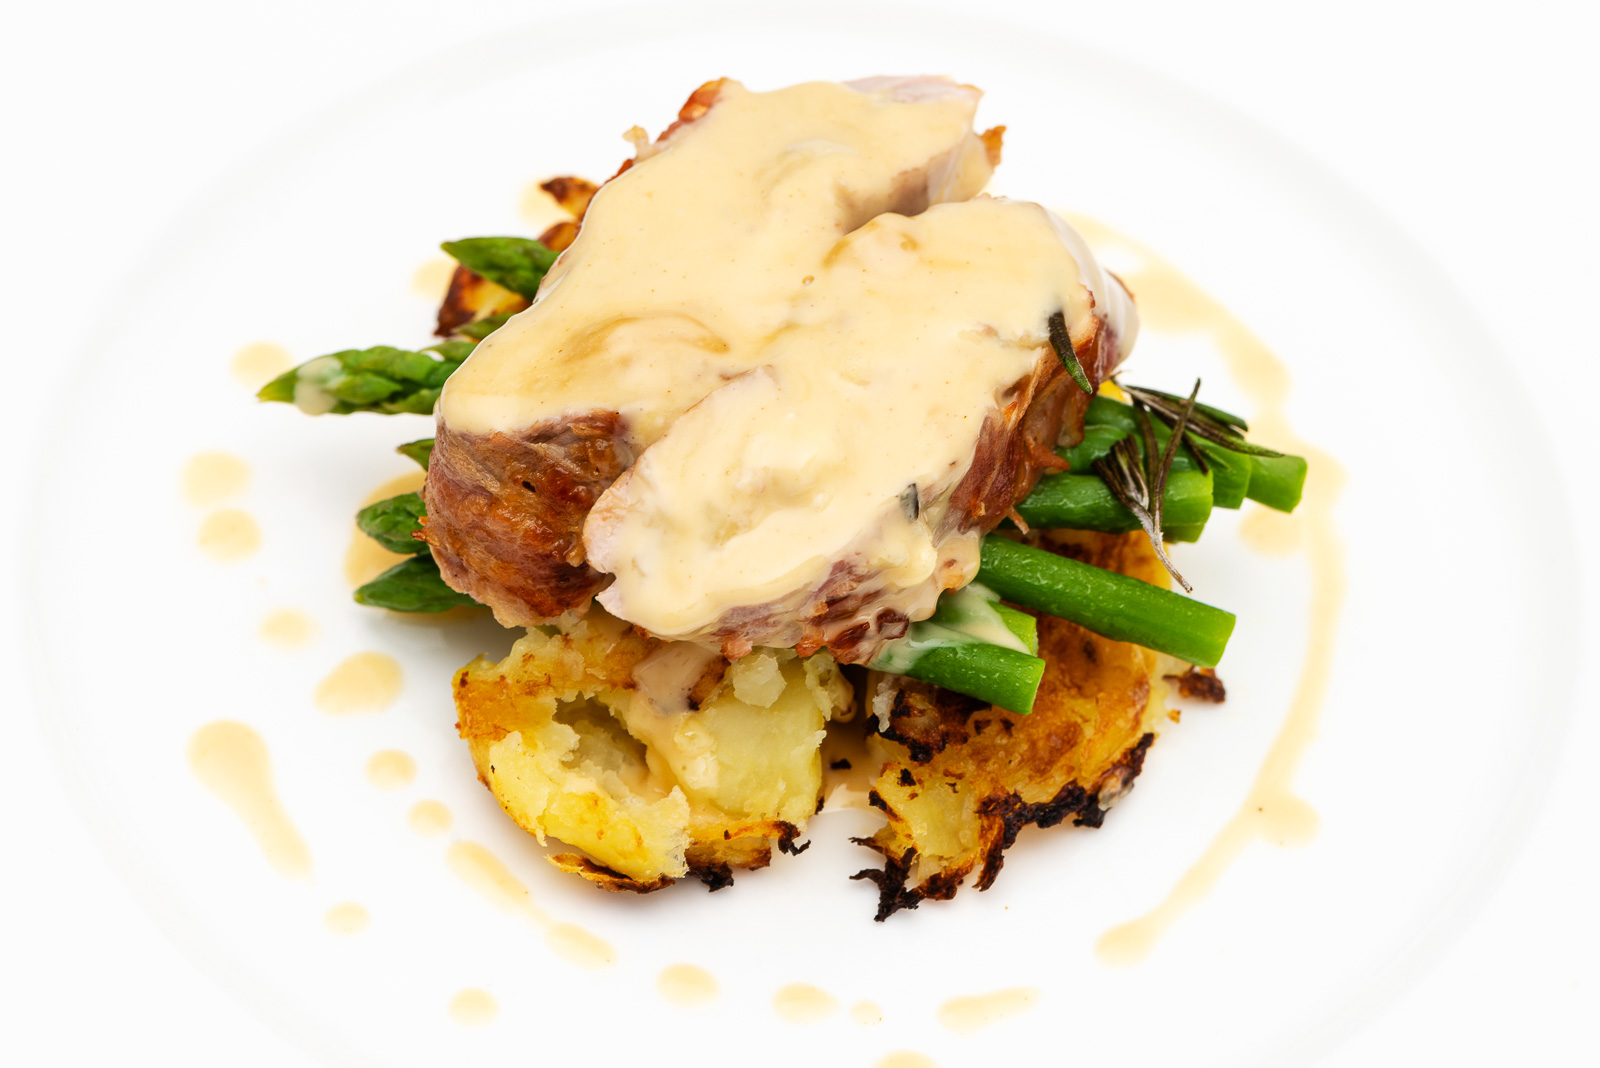 Pork Fillet with Doddington Dairy's Capability Brown Cheese, served with crispy new potatoes, asparagus and a cider sauce. Photography by Sue Todd Photography.